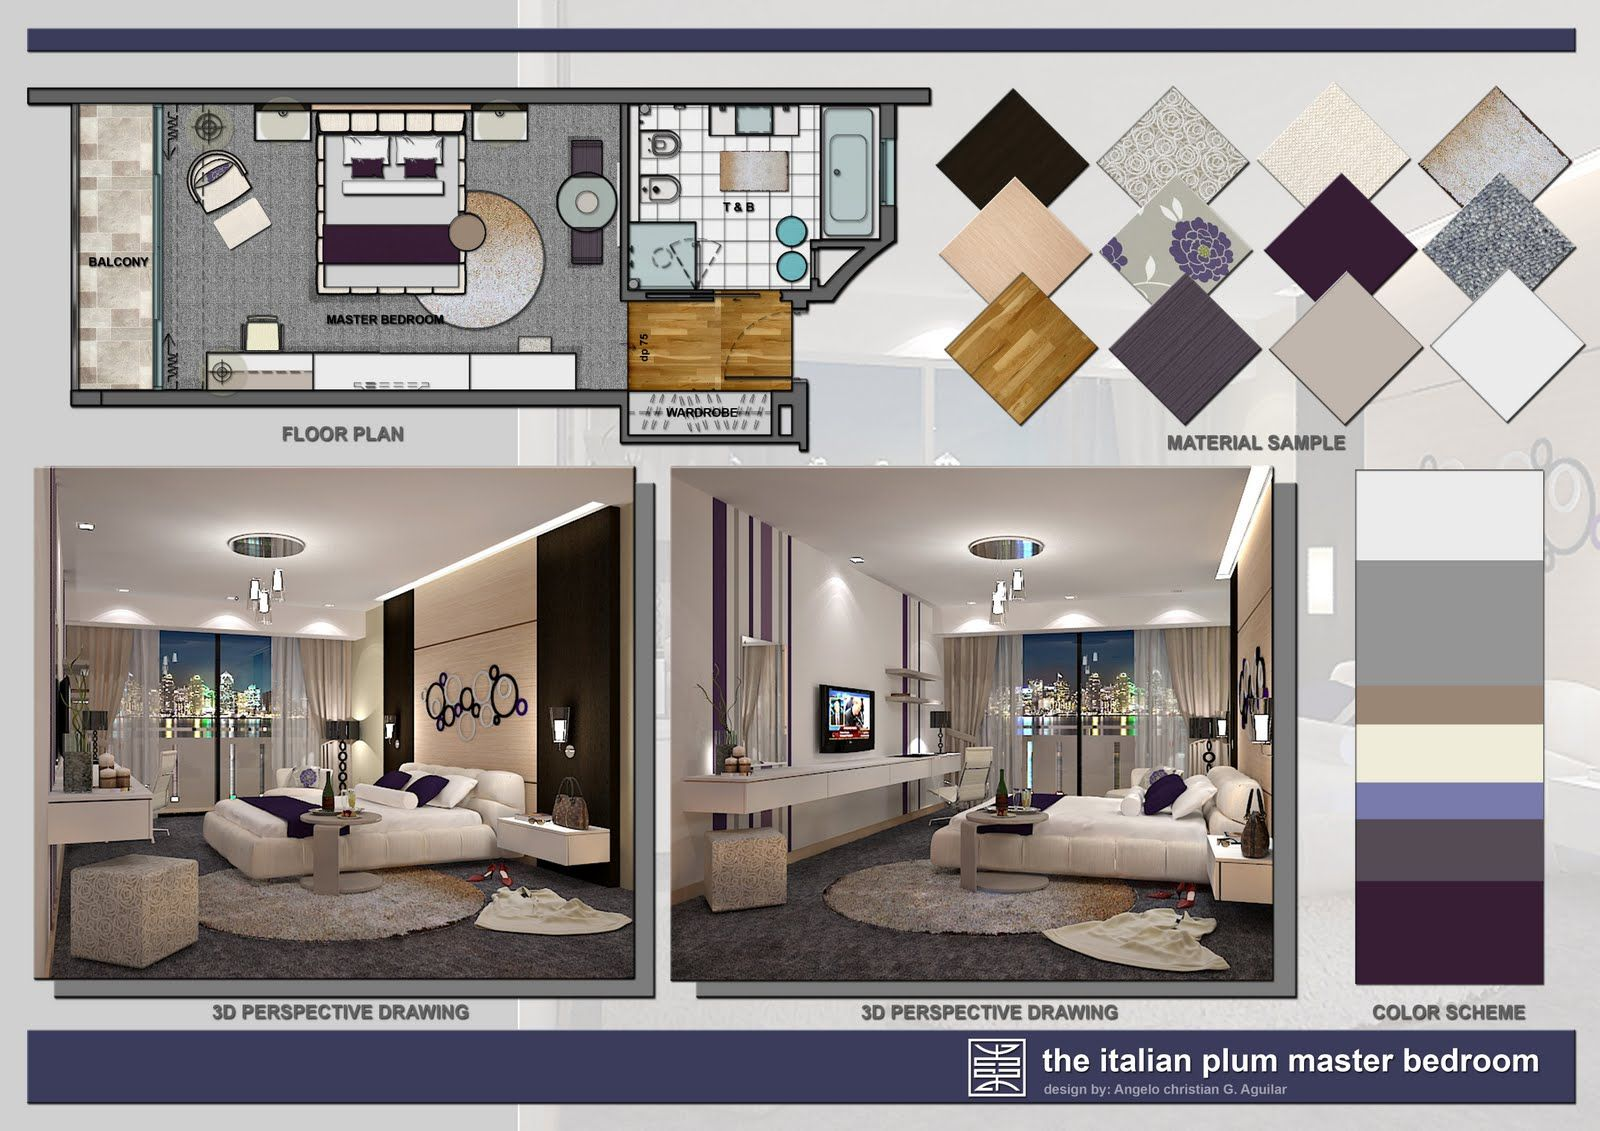 Nkba Presentation Boards Google Search Presentation Boards Pinterest Interior Design